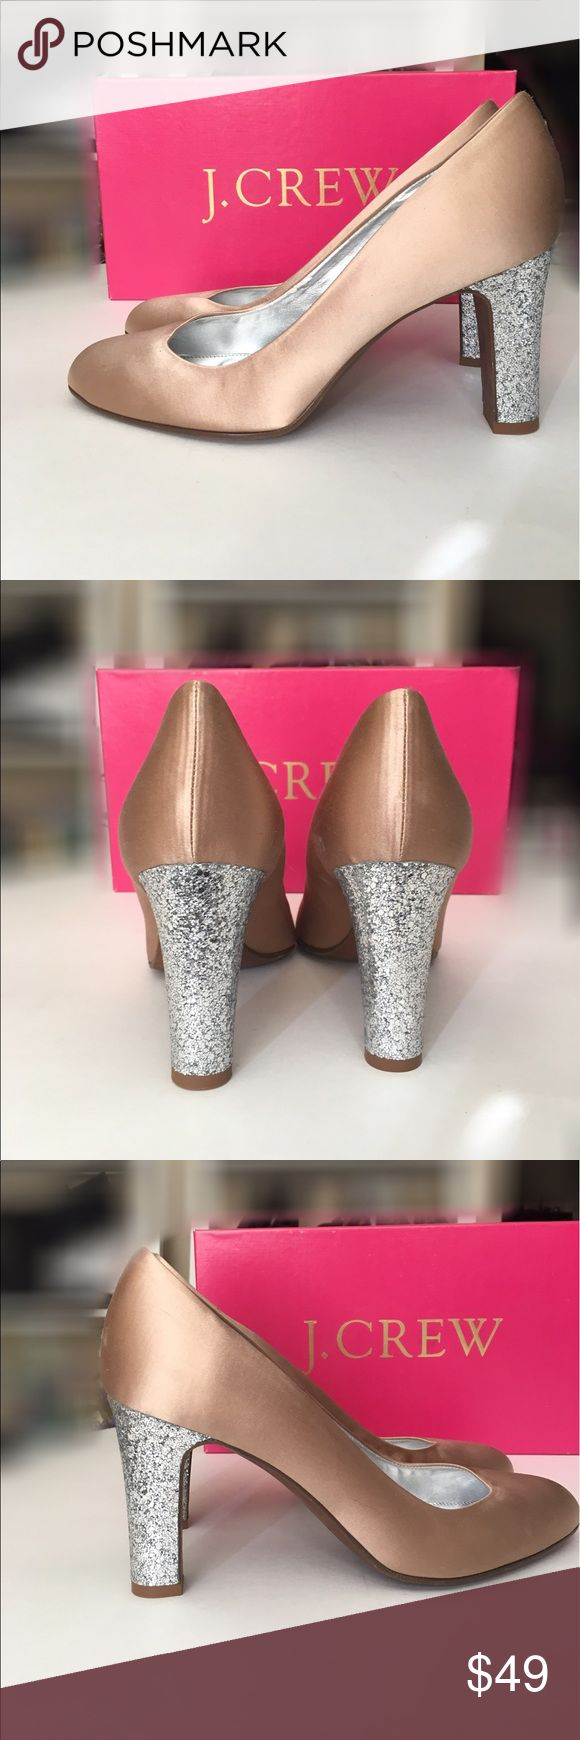 NWT Starla Satin Pumps in Sandalwood by JCrew 81/2 Starla Satin Pumps in Nude/Sandalwood- Gorgeous Beigy Pink neutral color by JCrew - Never been worn - Sparkly glitter heels - Excellent condition - Fast shipping J. Crew Shoes Heels